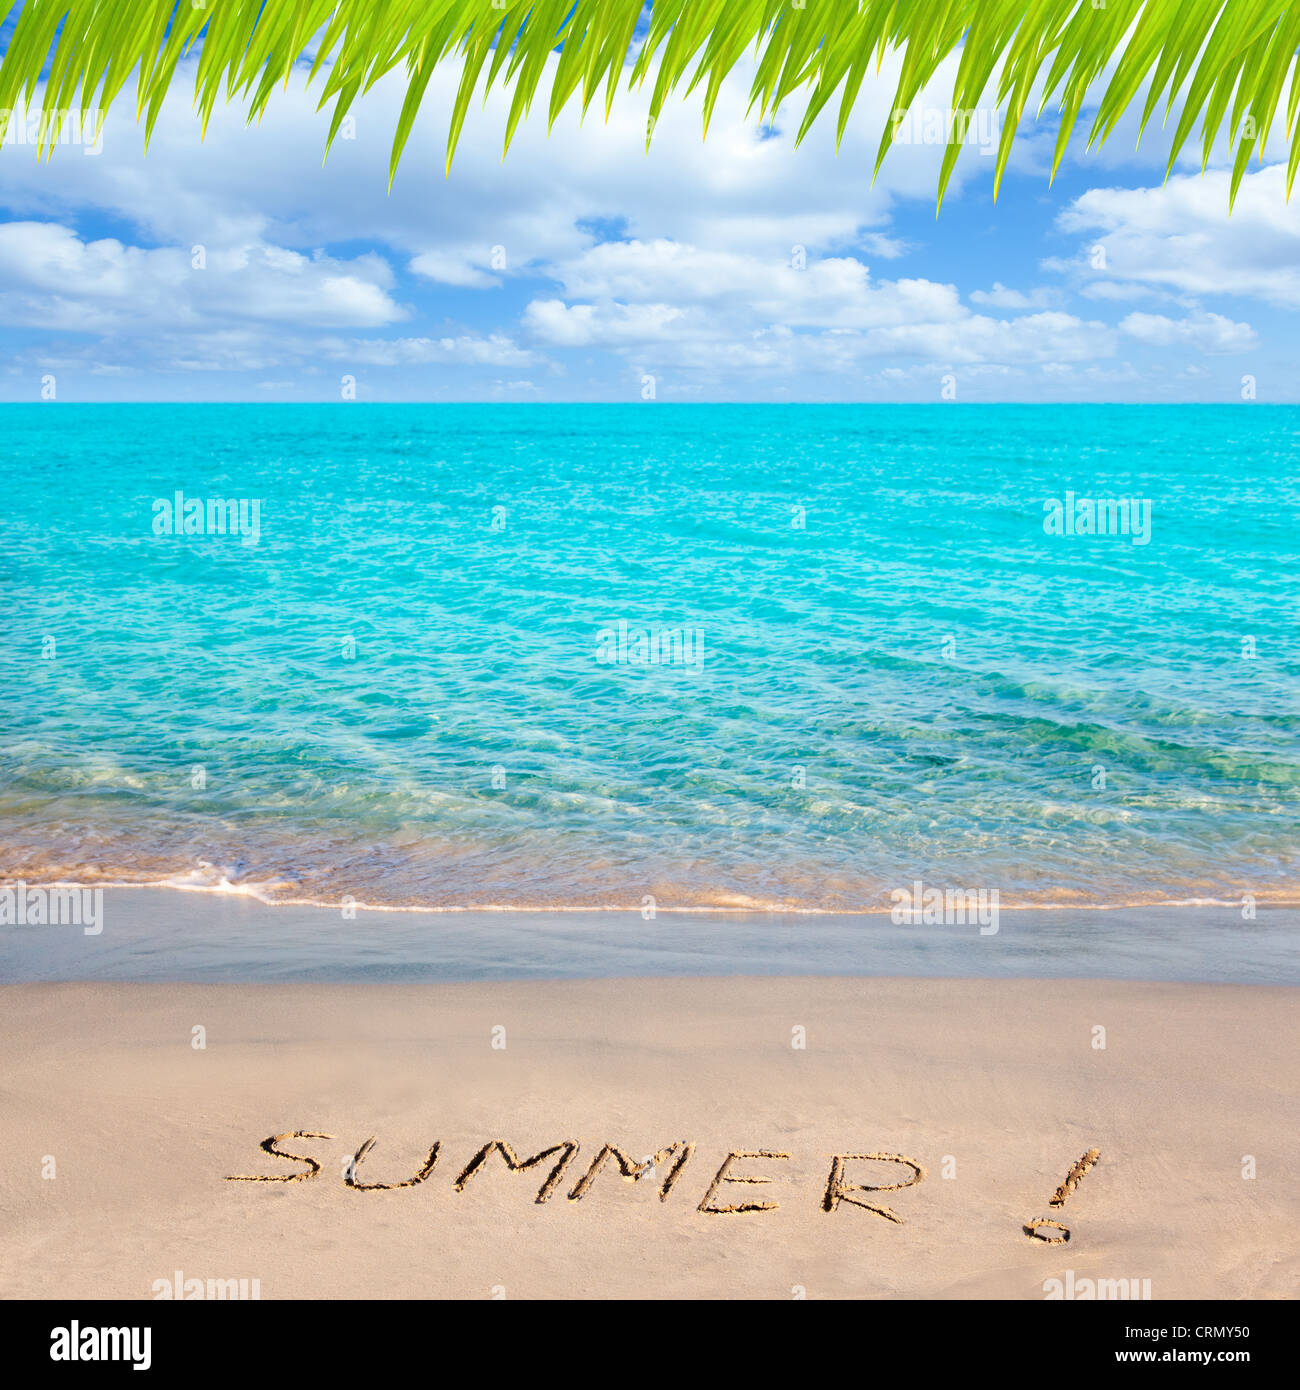 Caribbean tropical beach with Summer word written in sand - Stock Image